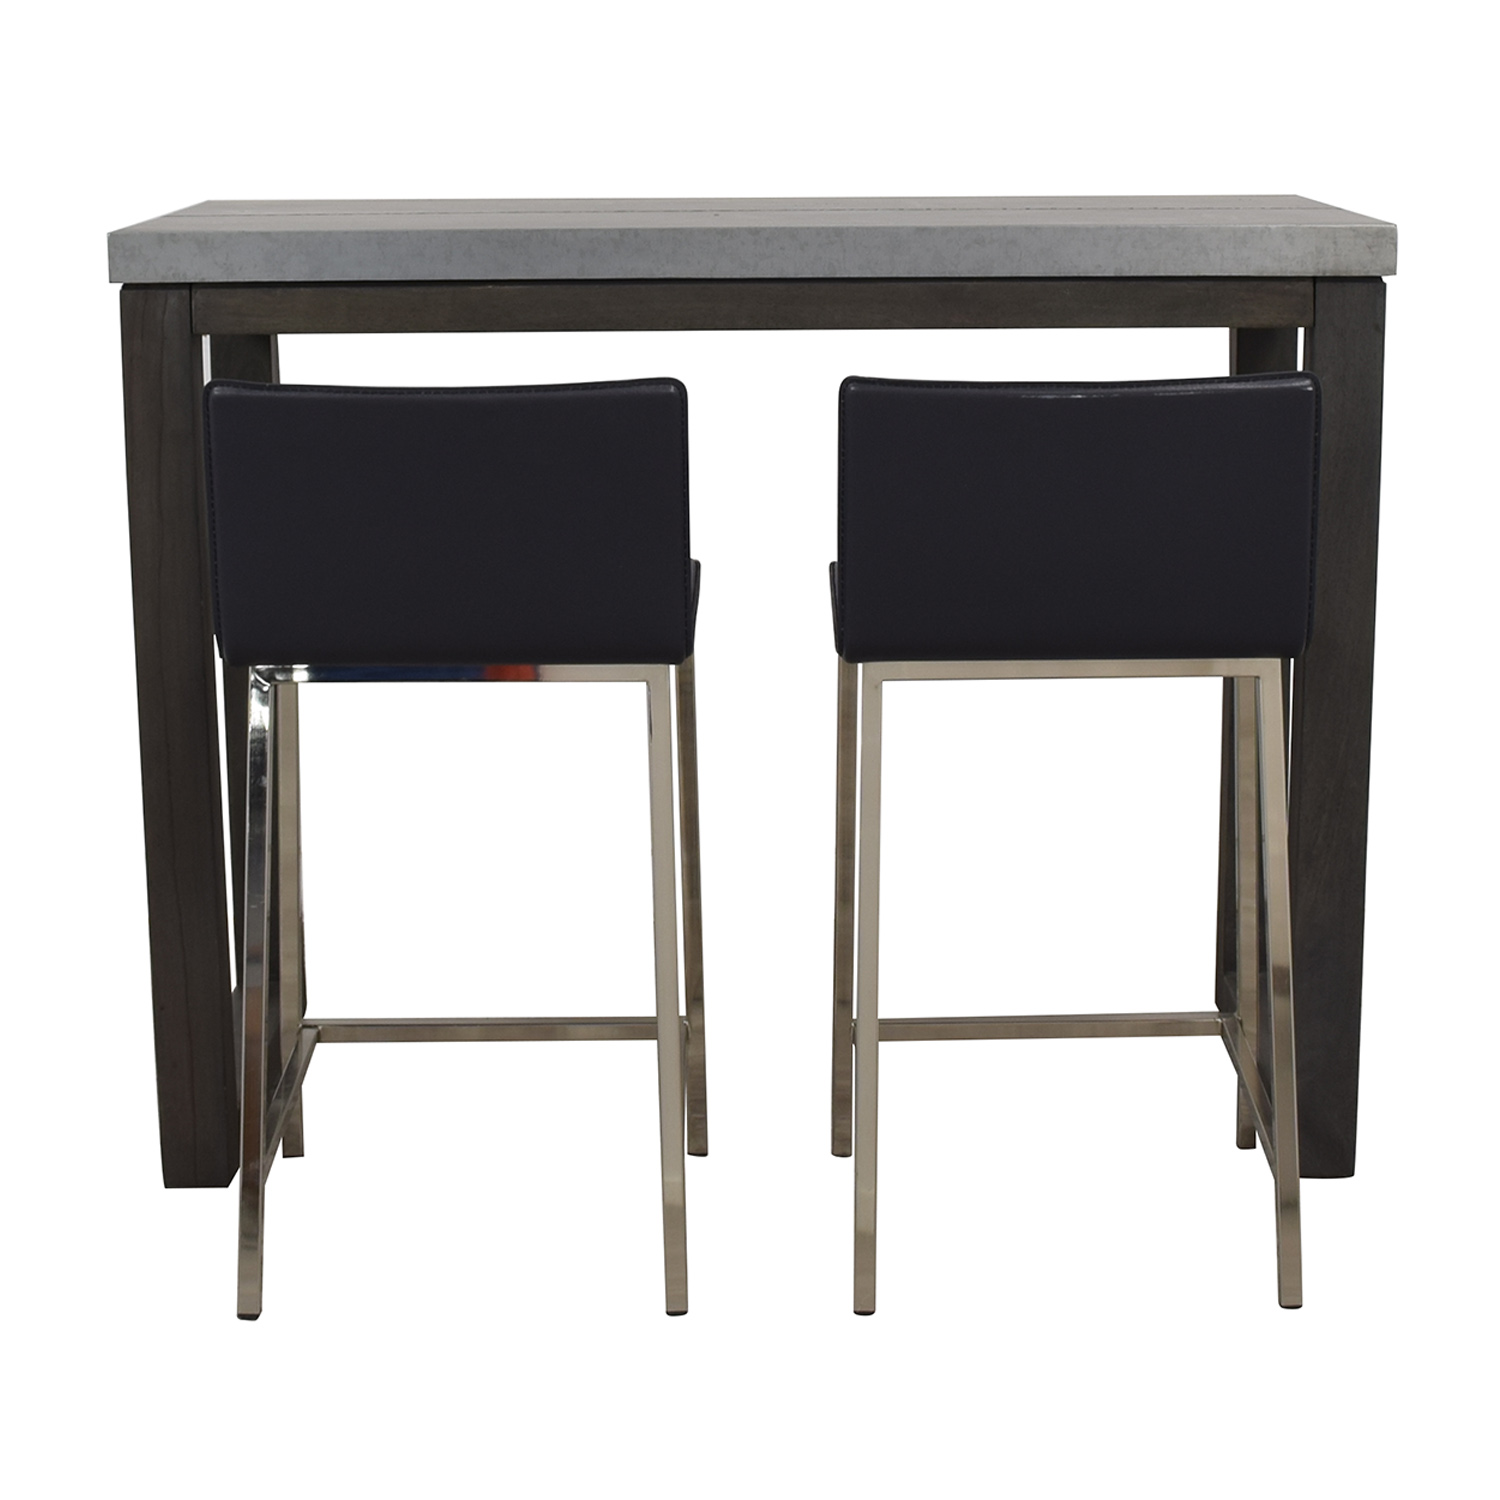 CB2 CB2 Stern Counter Table with Two Stools